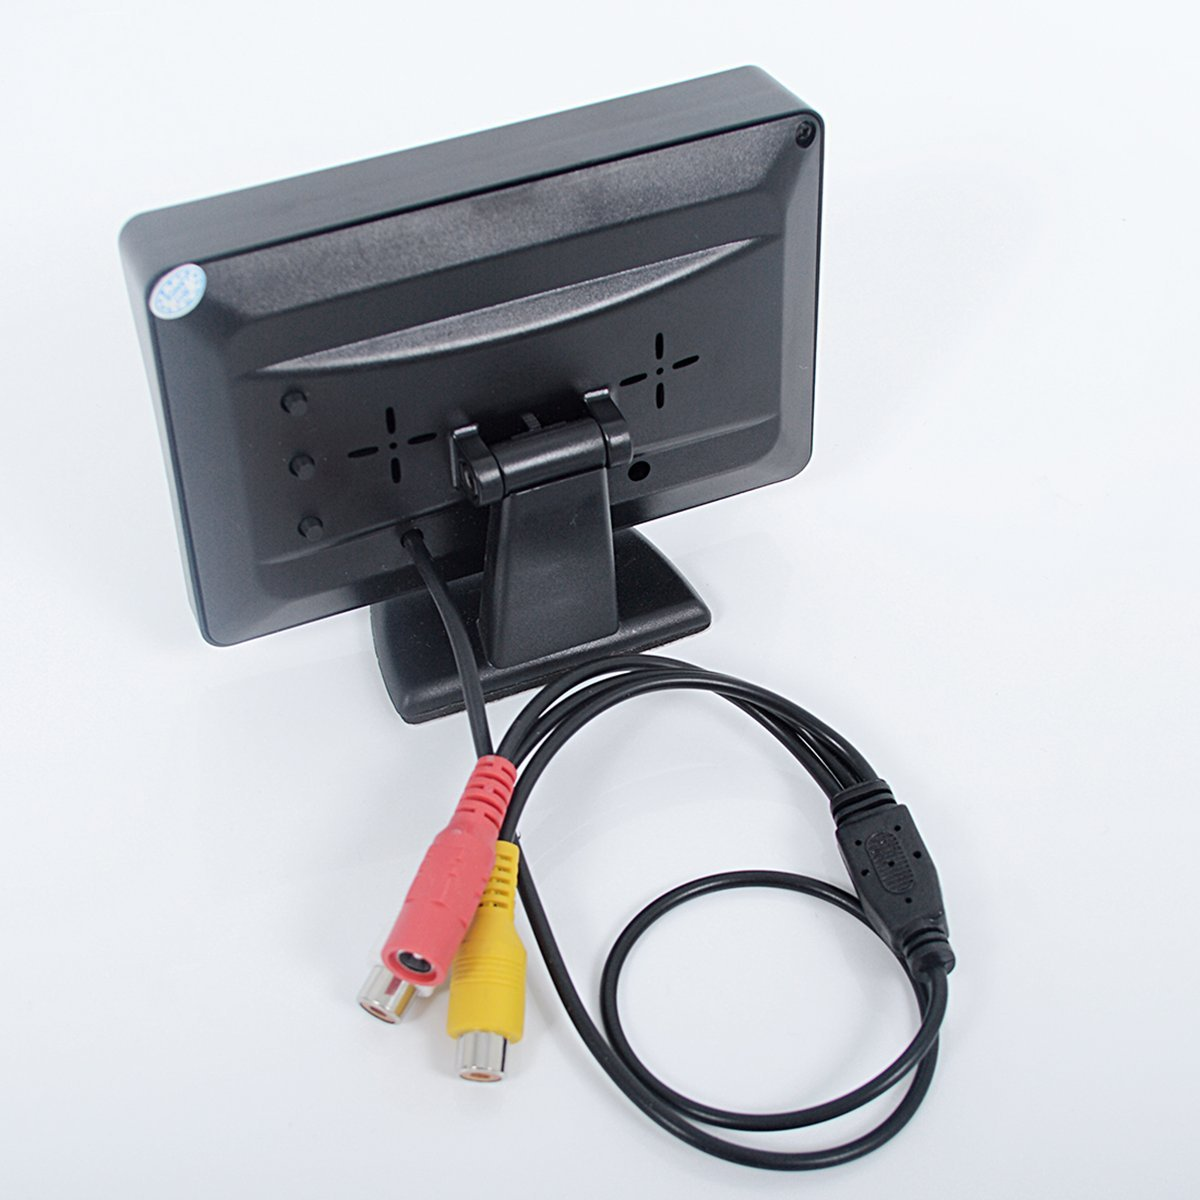 Car Monitor Parking Display 4.3 Inch TFT LCD Color Rear View Screen Desktop SINOVCLE DYW 4350454398